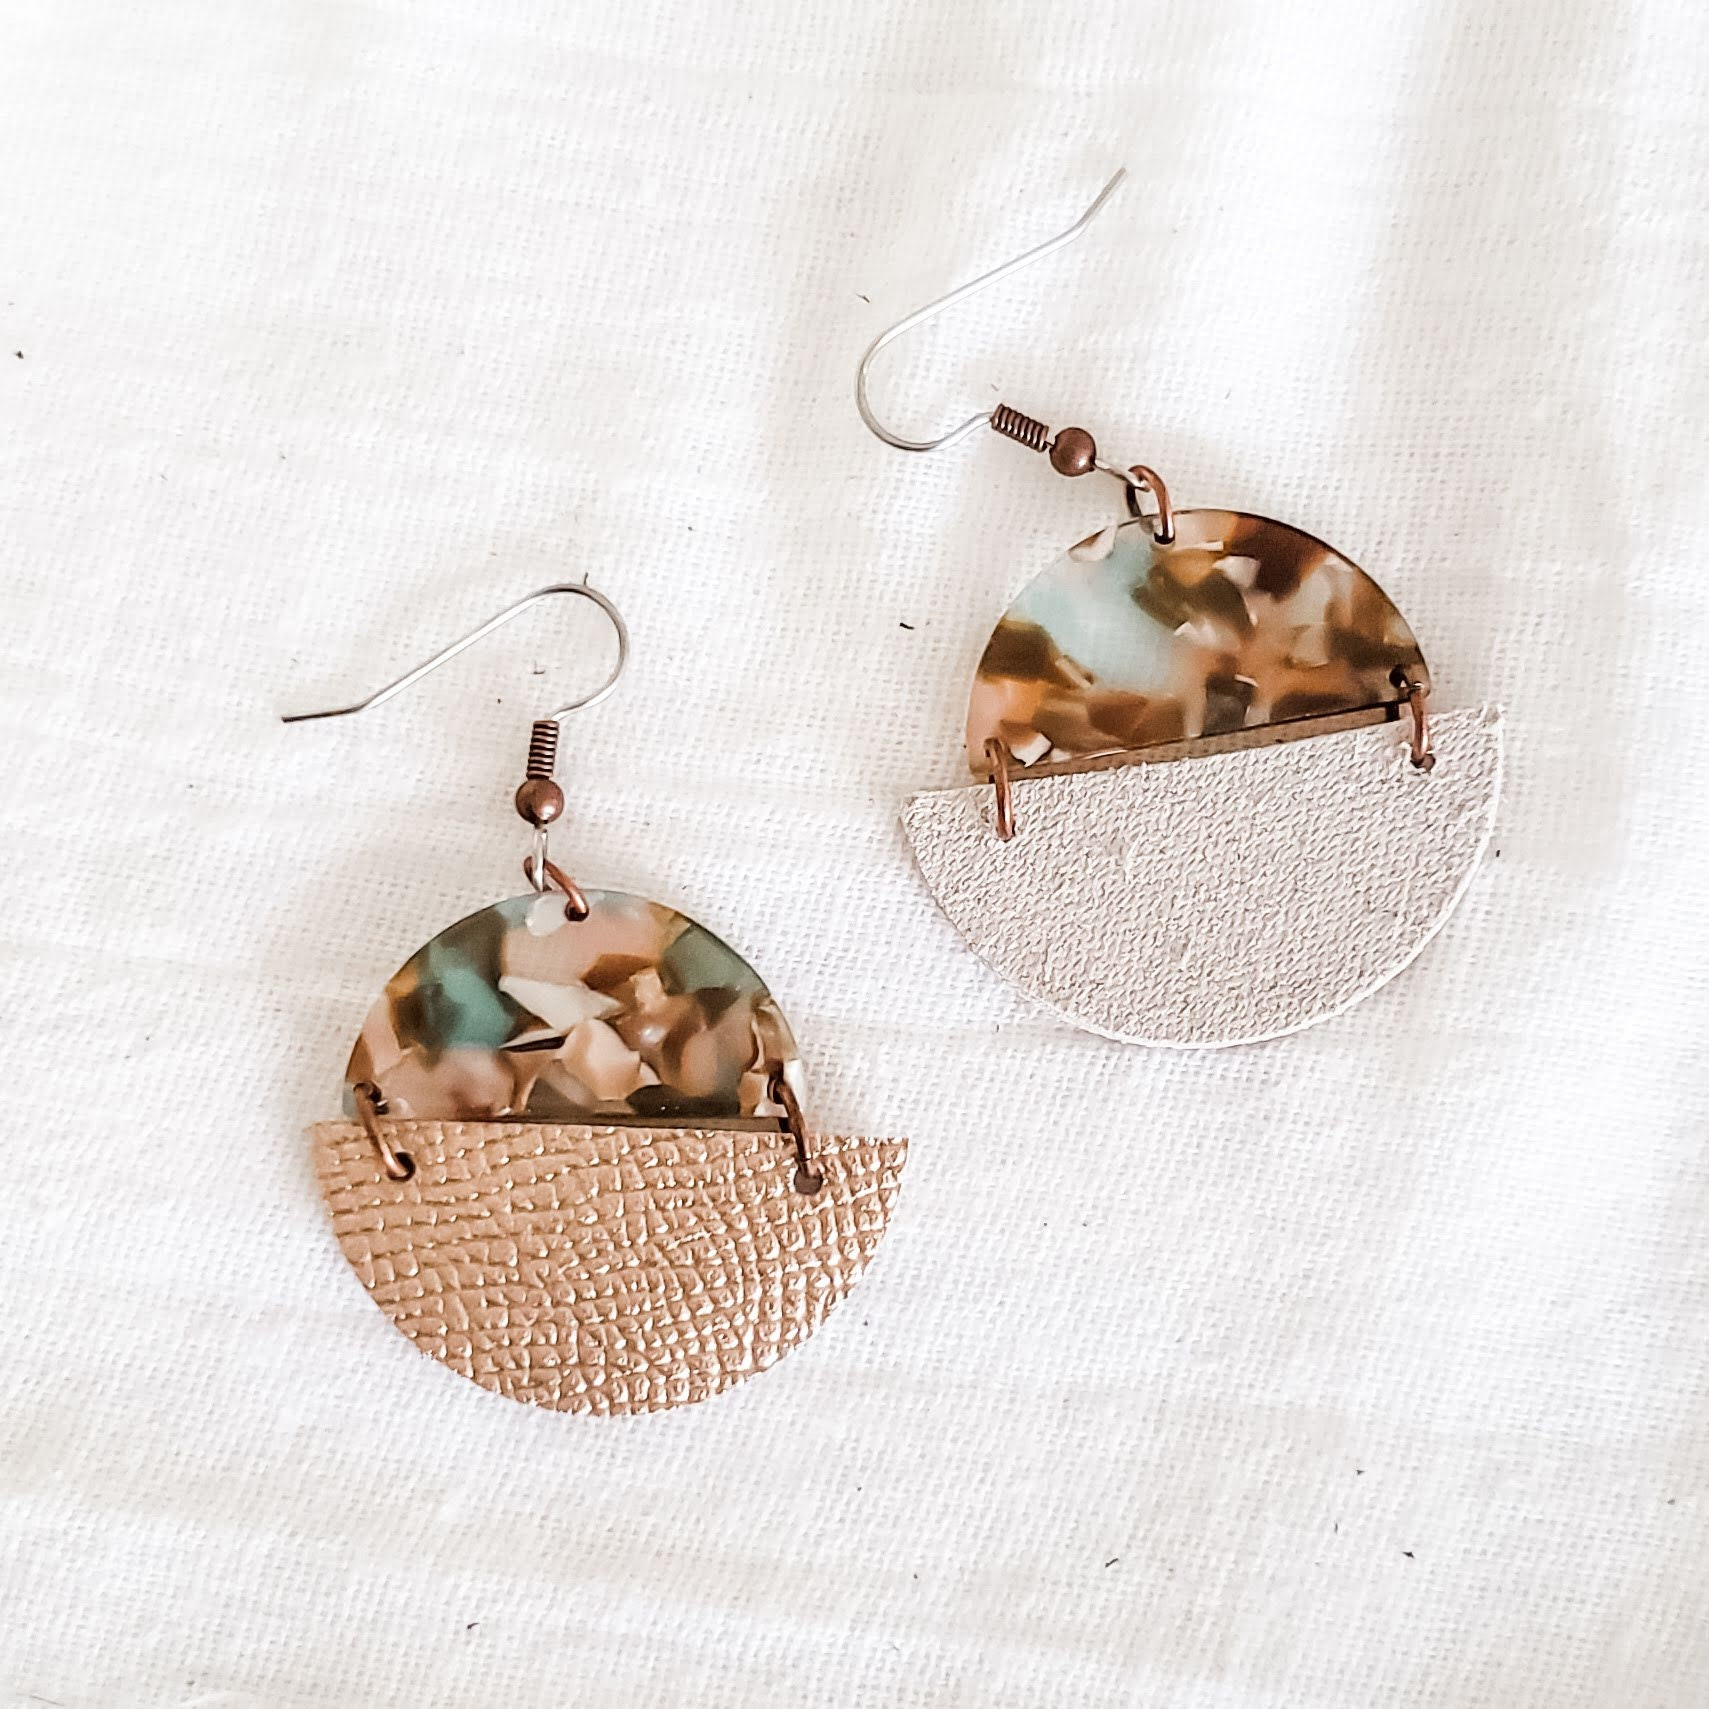 Semicircle Earrings Modern Earrings m Acrylic and Faux Leather Half Moons Earrings Gifts for Her Glitter Acrylic